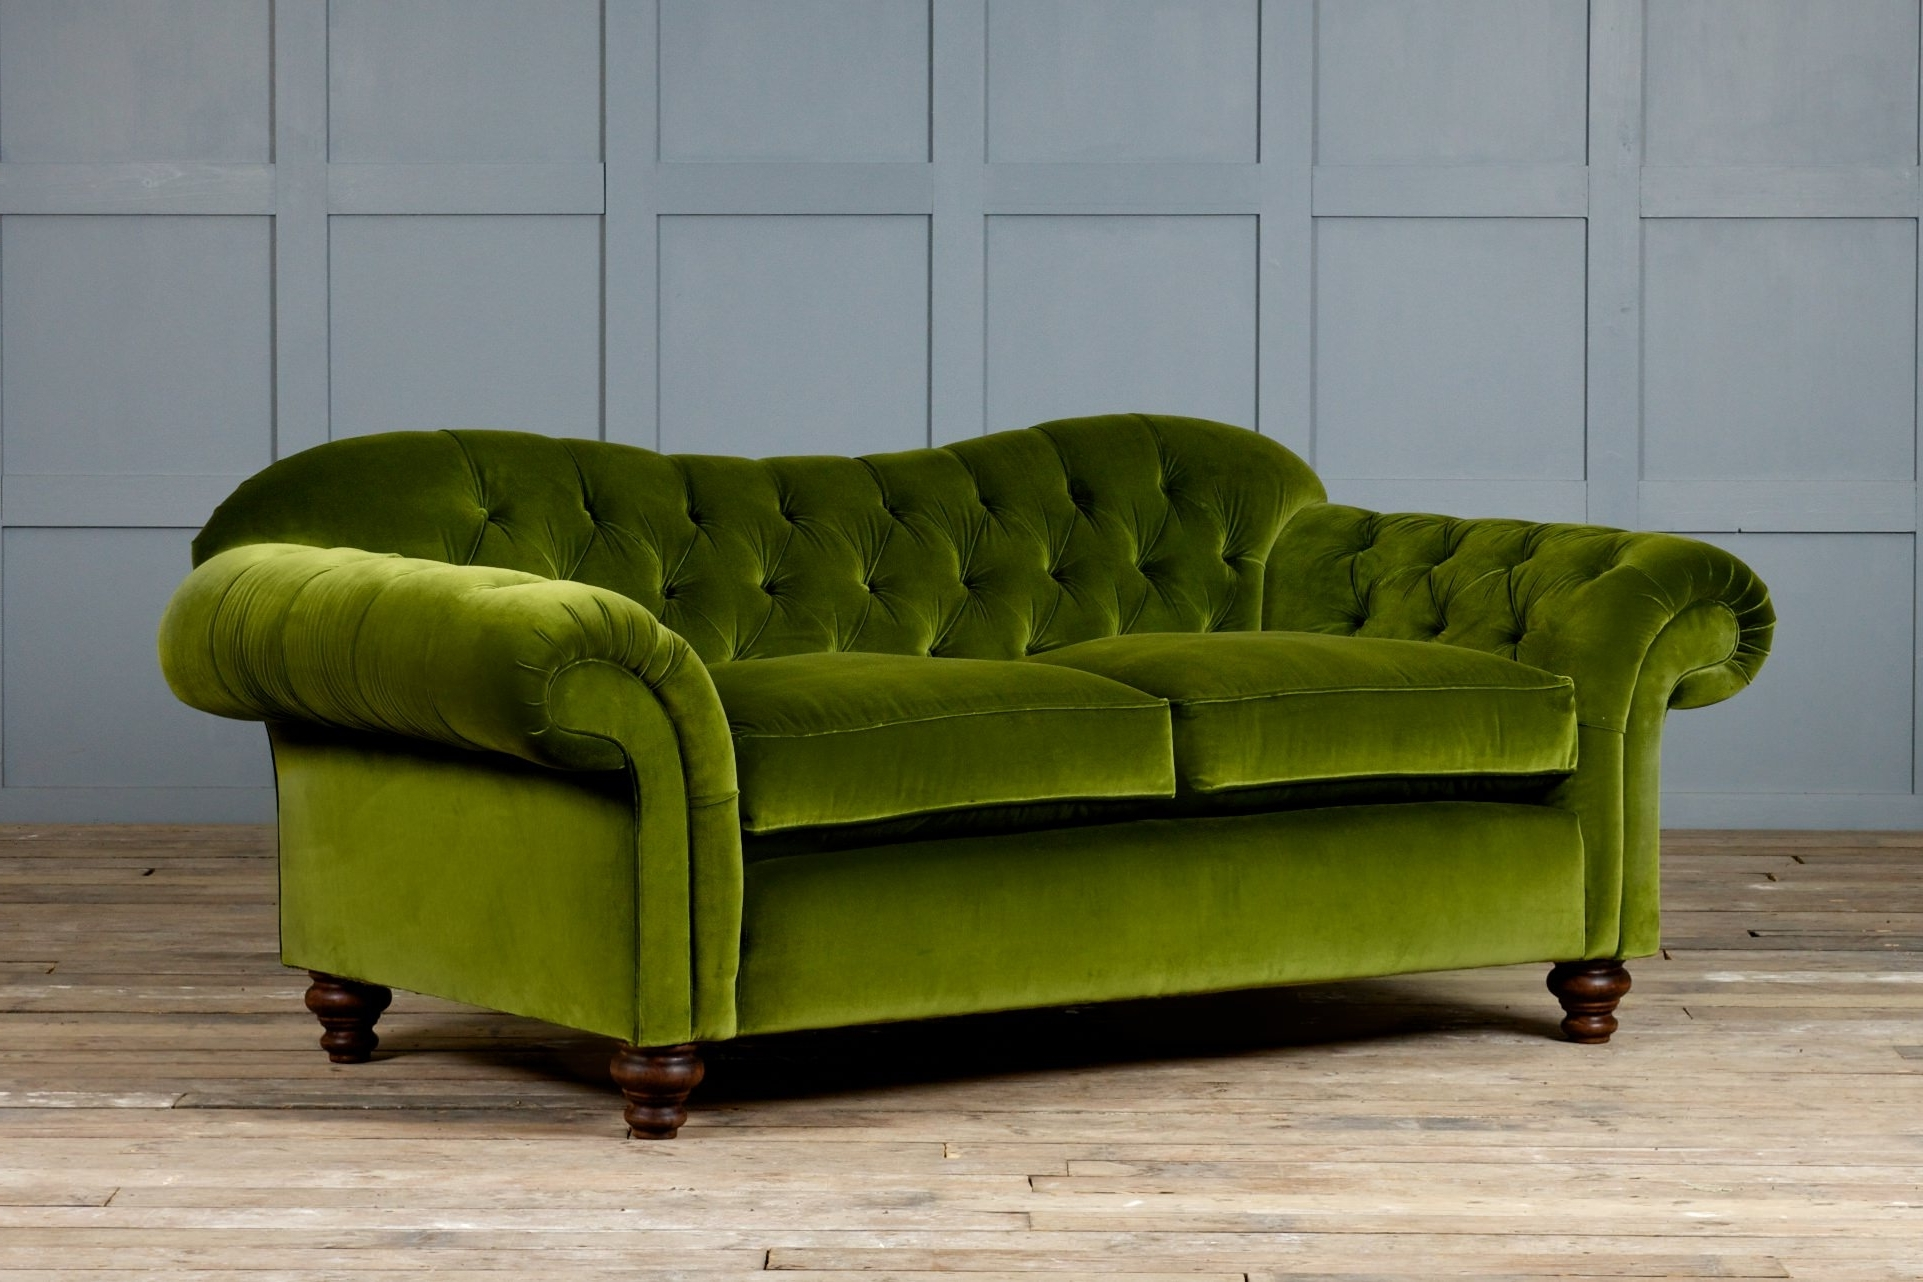 Green Sofa Chairs For Most Current Furniture : Perfect Green Velvet Couch 85 In Modern Sofa Ideas (Gallery 5 of 20)